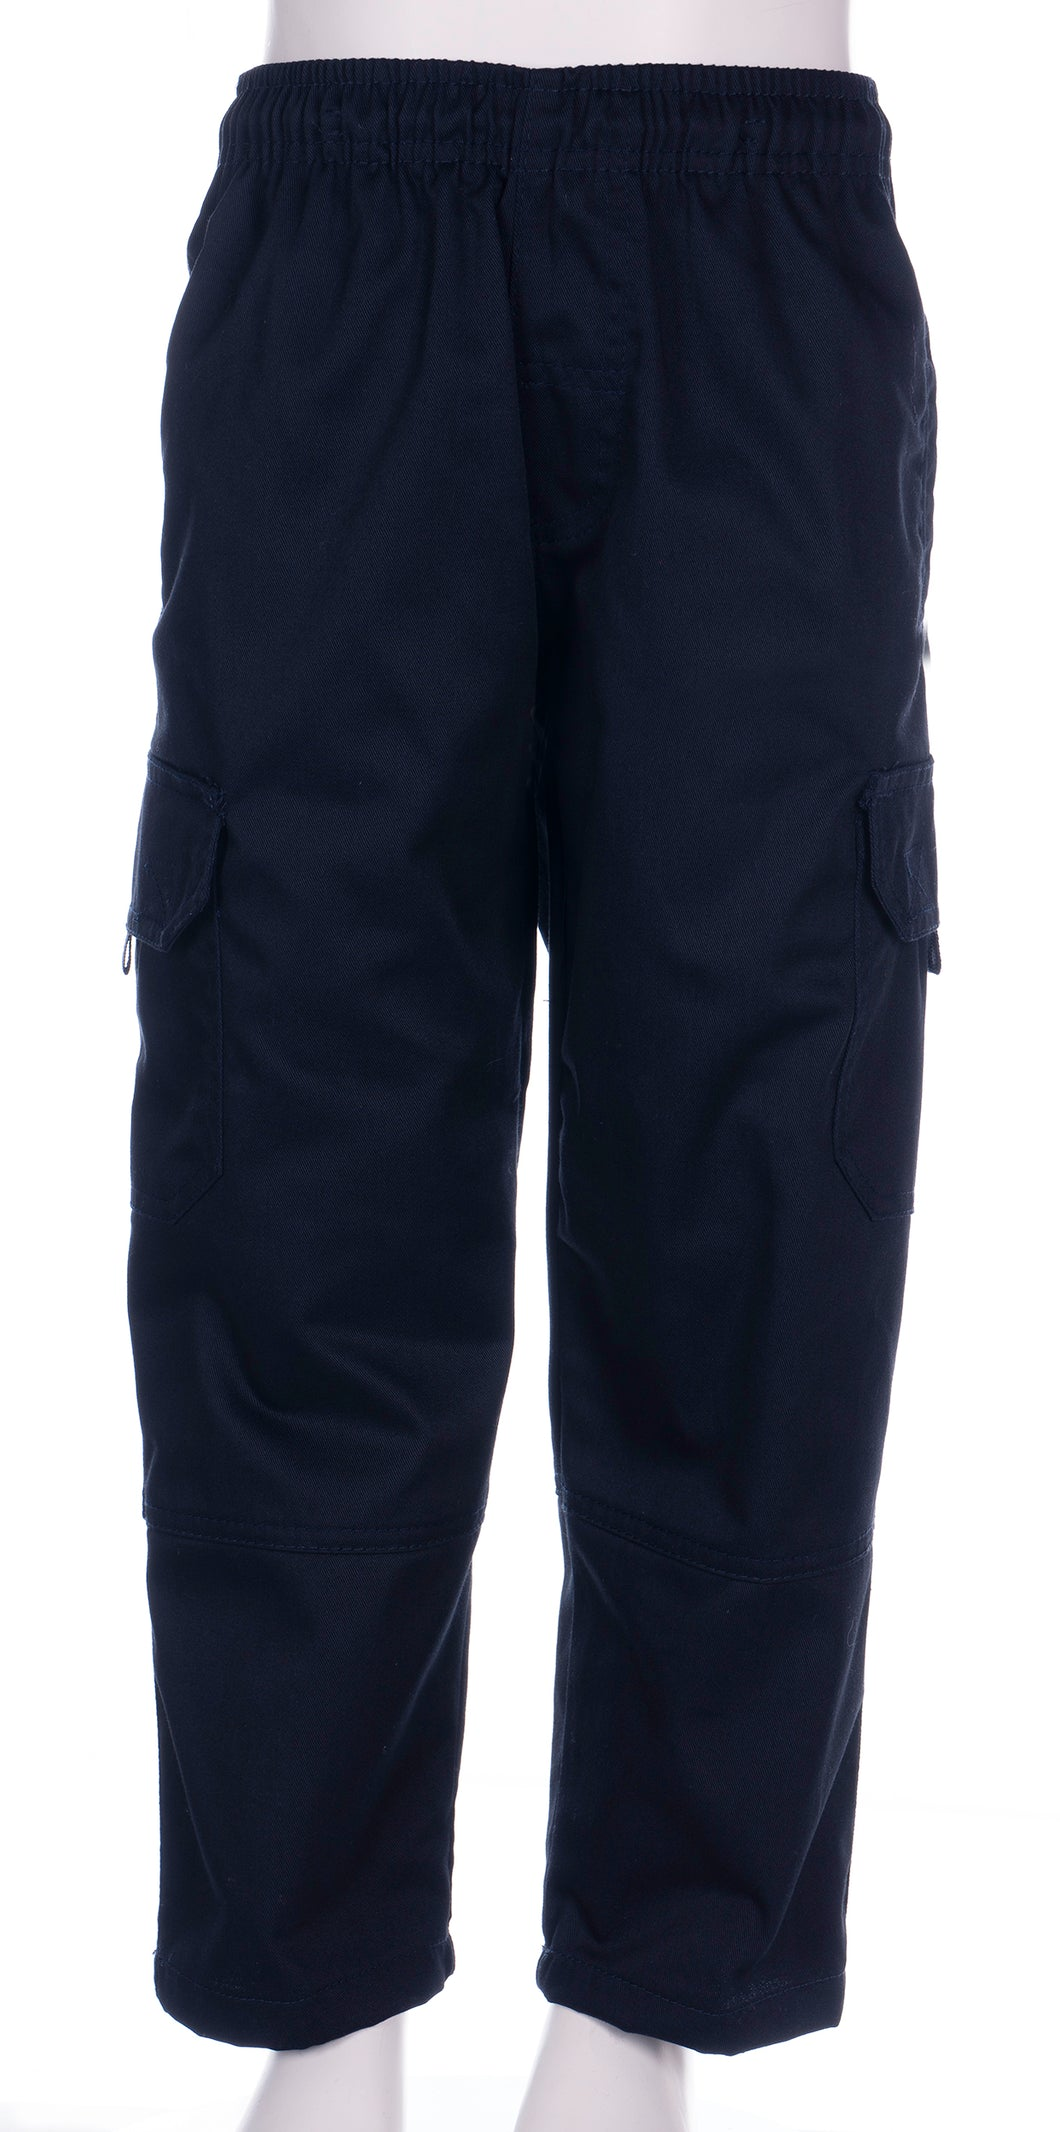 Lincoln Heights School - Cargo Pants Navy